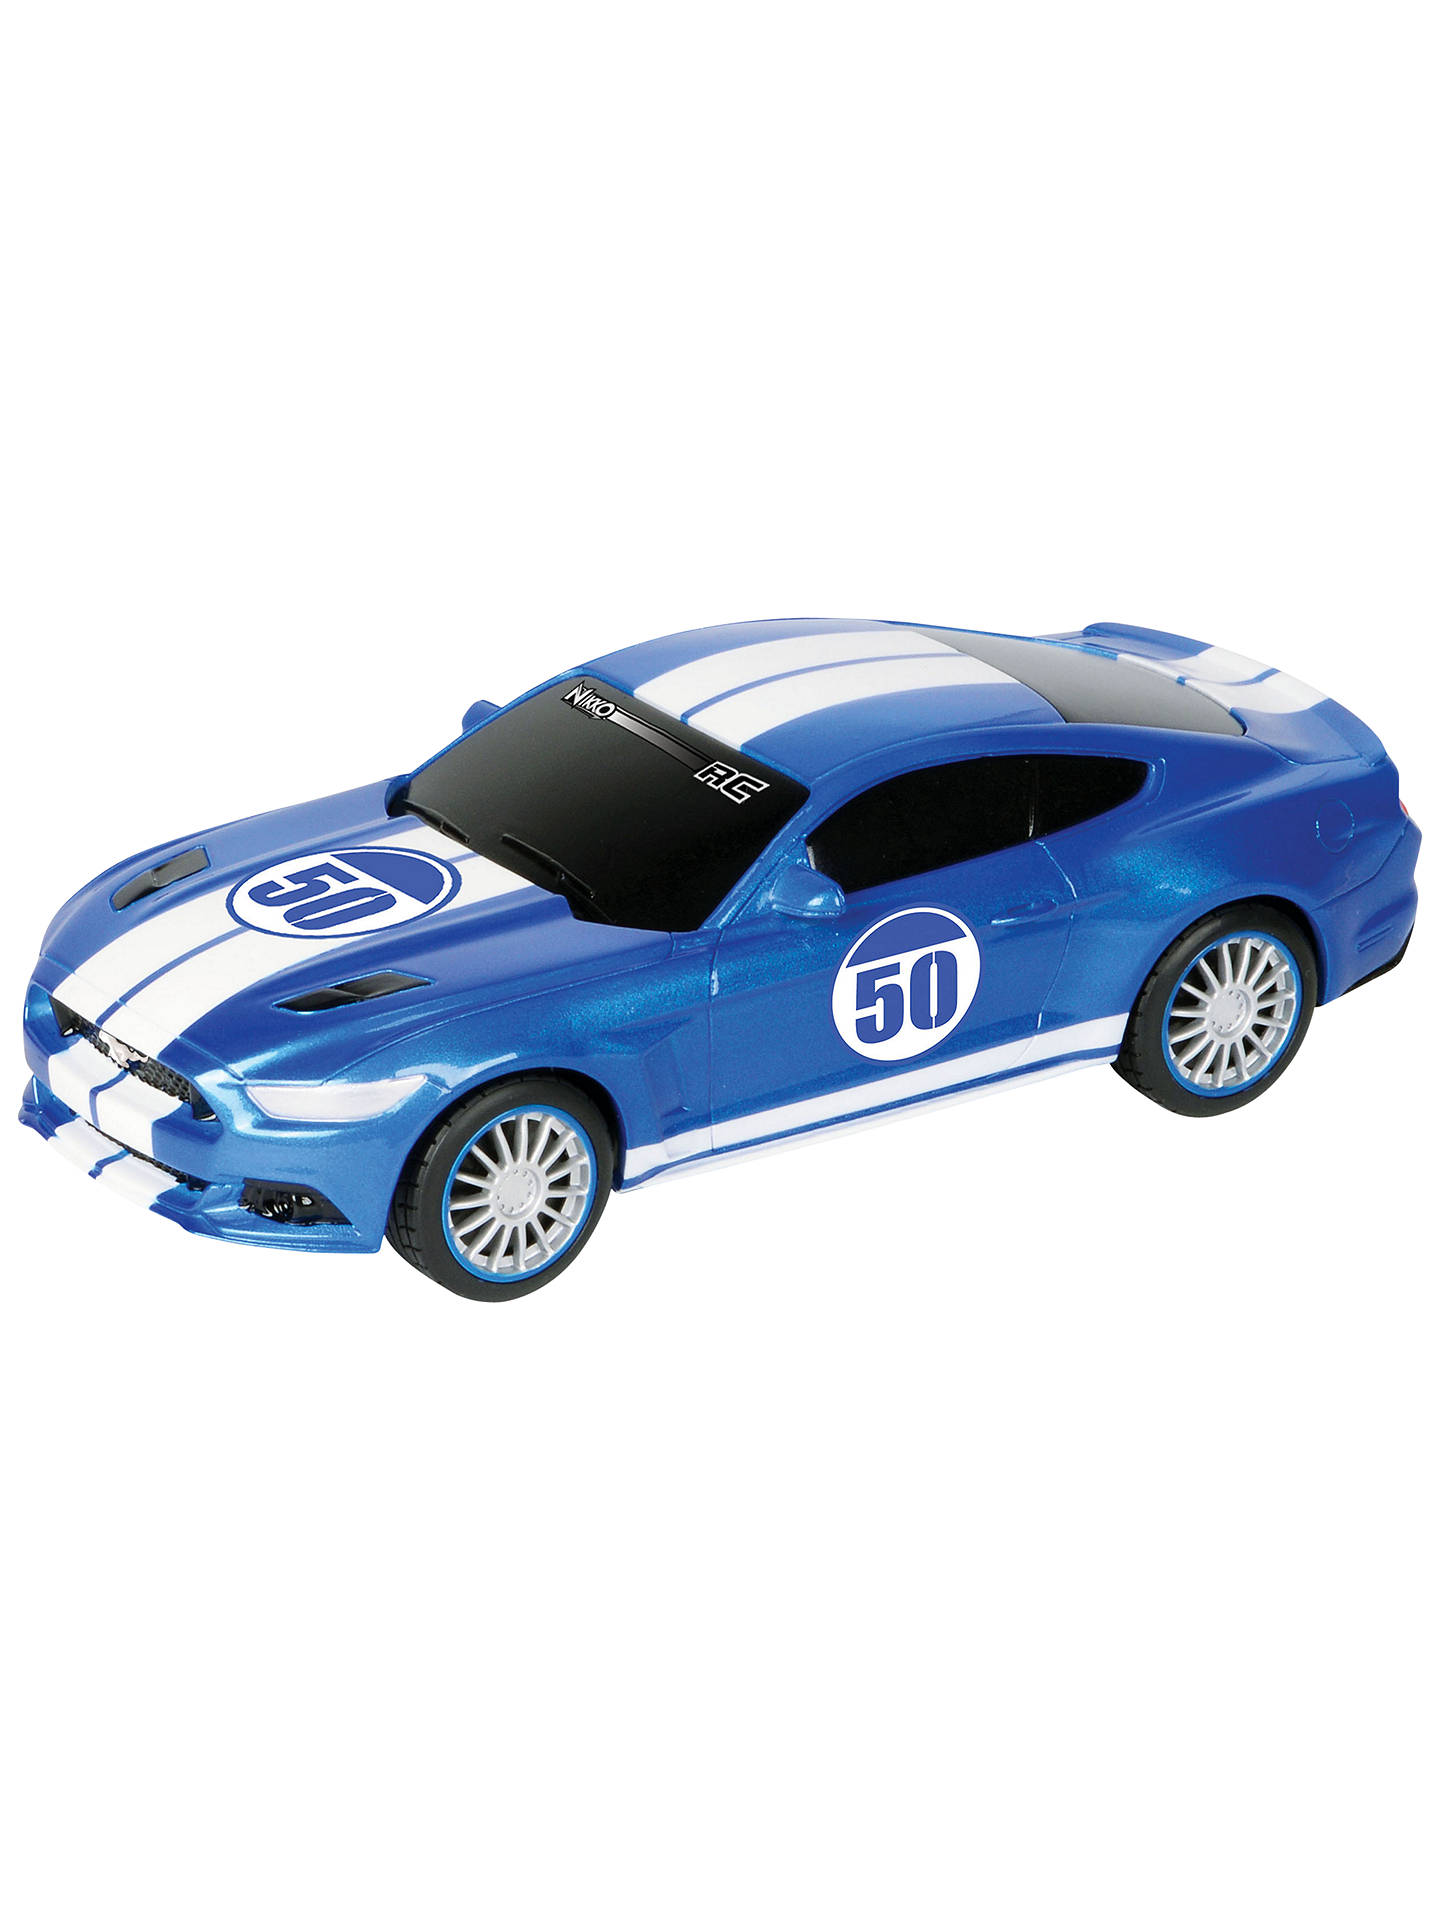 Buy nikko ford mustang gt 120 remote control car blue online at johnlewis